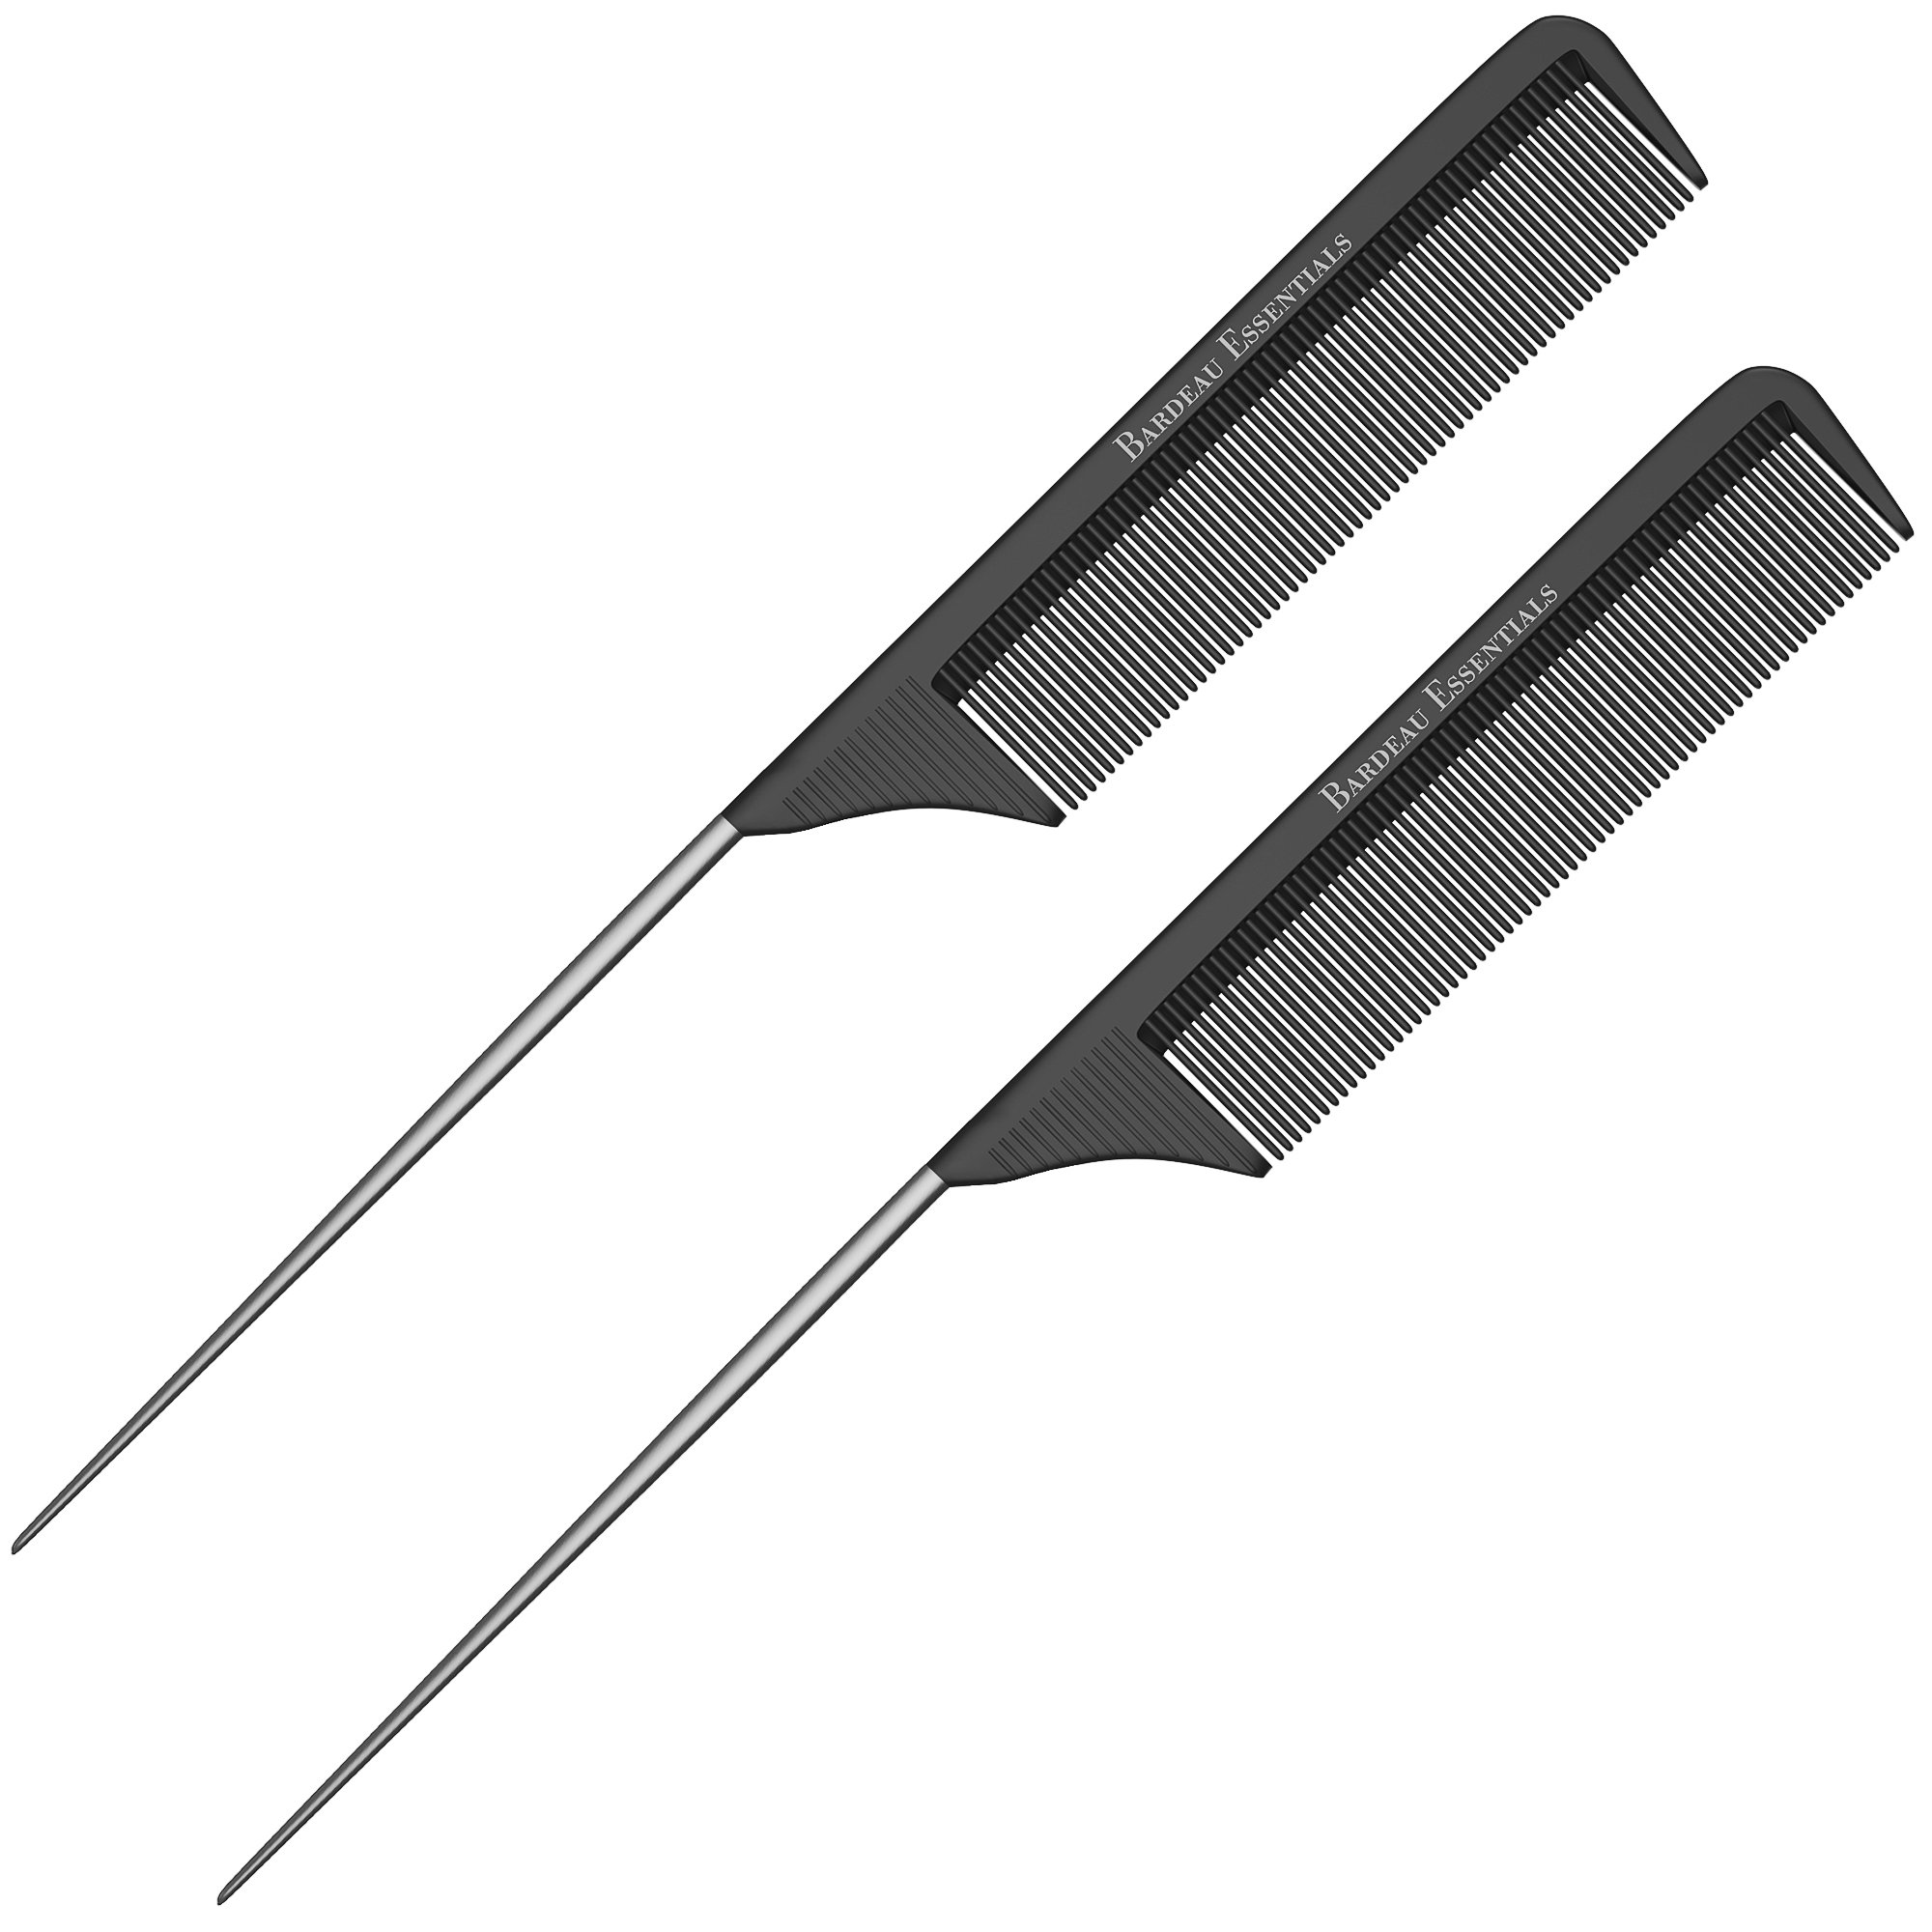 Professional 8.8 Inch Tail Comb (2 Pack) - Black Carbon Fiber And Stainless Steel Pintail - Chemical And Heat Resistant Teasing Comb - Lightweight Rat Tail Comb For All Hair Types (2 Pack)